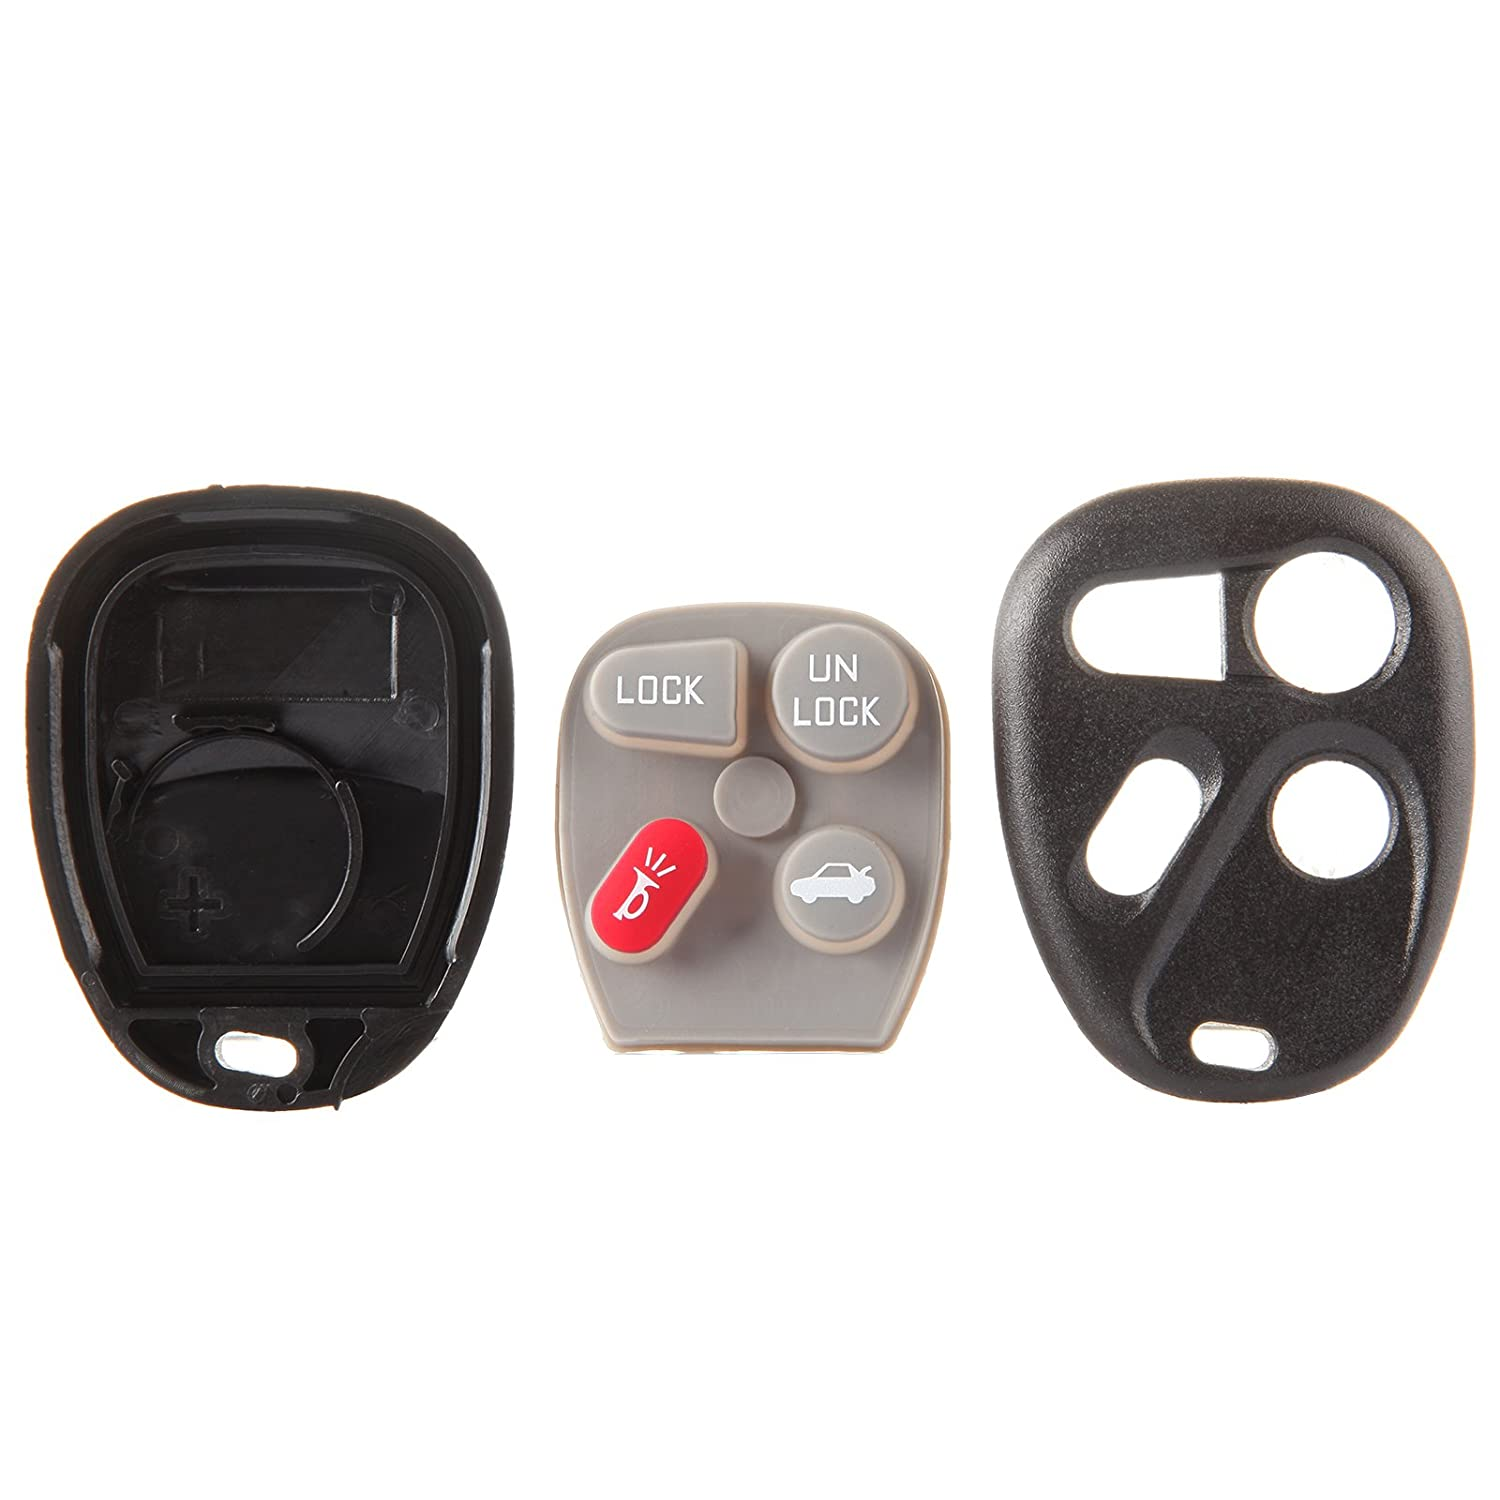 ECCPP 2PCS 4 Buttons Keyless Entry Remote Control Car Key Fob Shell Case Replacement for Cadillac Chevy Buick GMC KOBLEAR1XT BHBU0503A1923